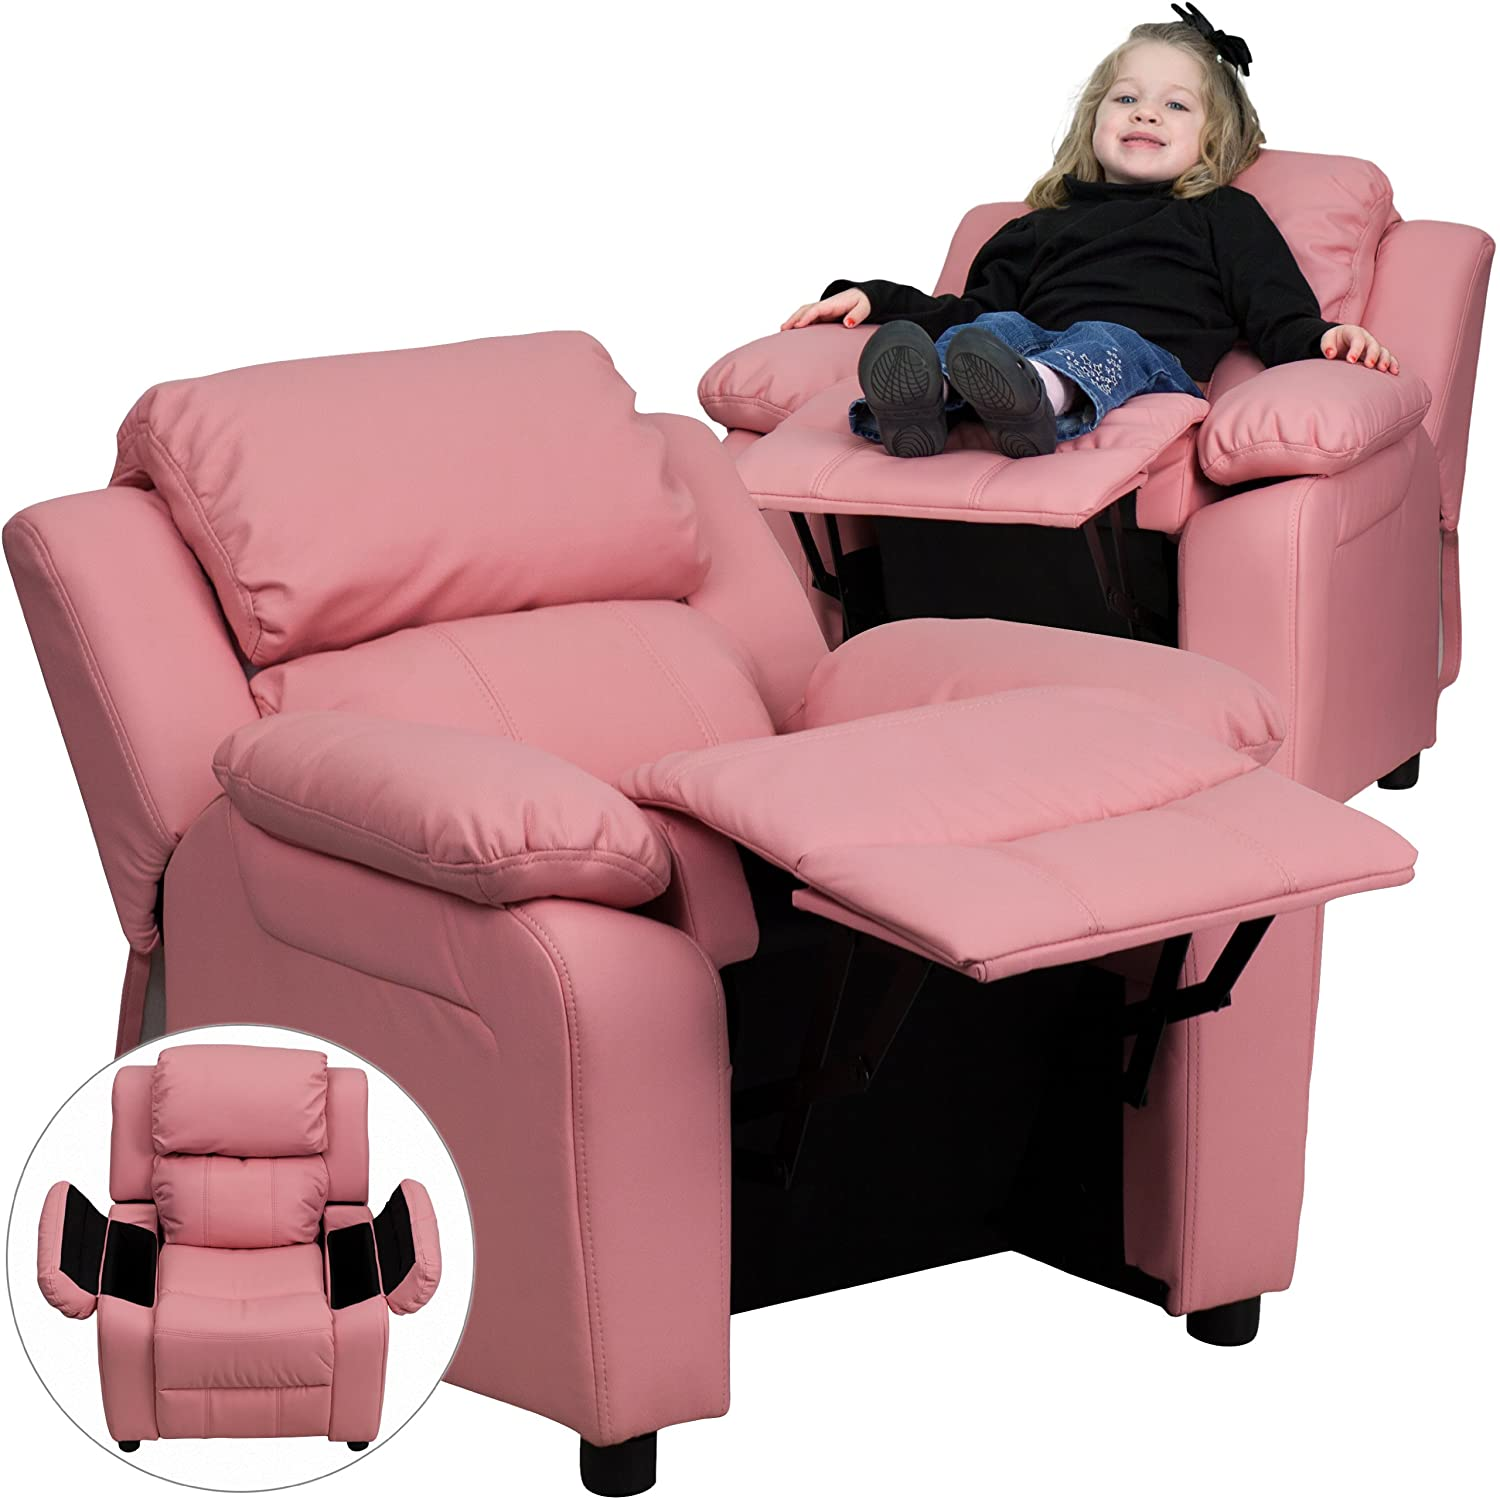 Amazon.com Flash Furniture Deluxe Padded Contemporary Pink Vinyl Kids Recliner with Storage Arms Kitchen u0026 Dining  sc 1 st  Amazon.com : kid recliner chair - islam-shia.org